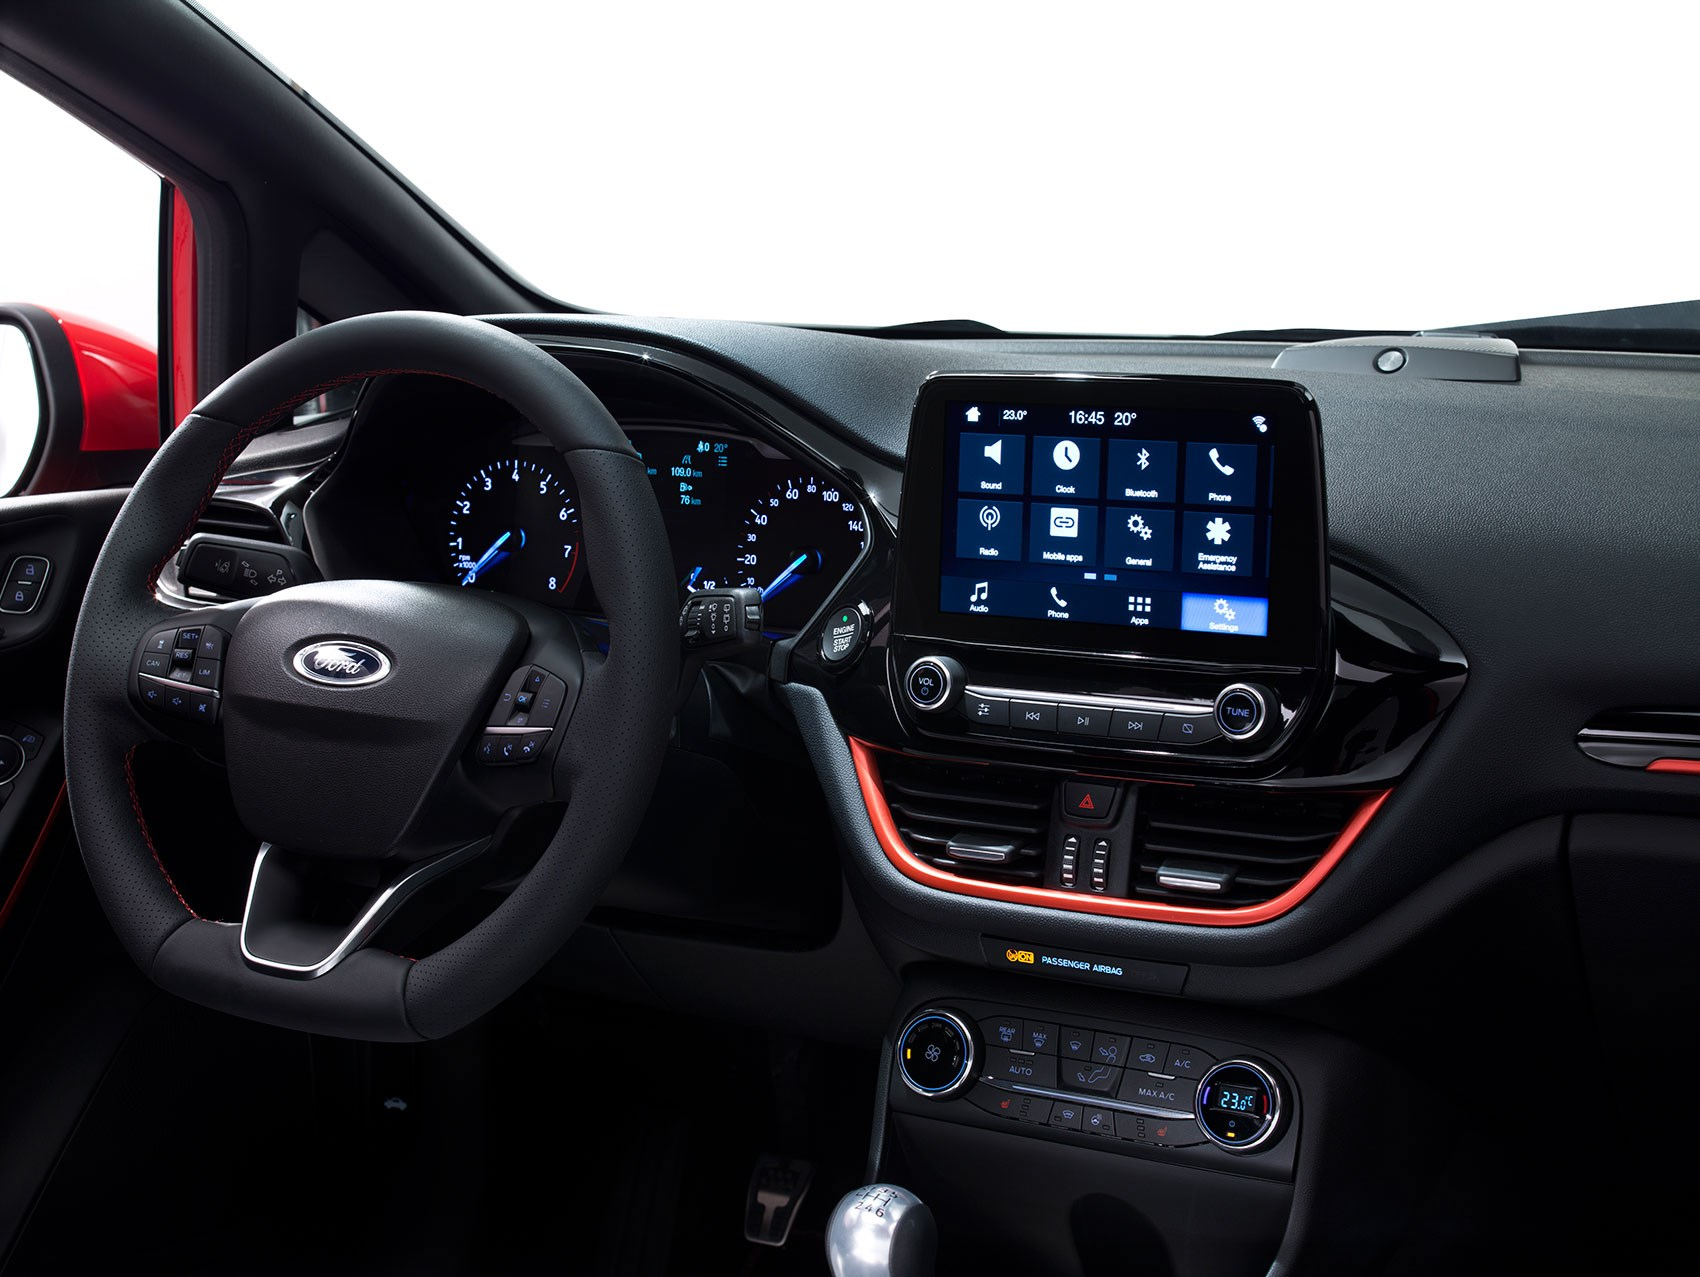 Models A New Tablet Sprouts From Ford Fiesta Dash